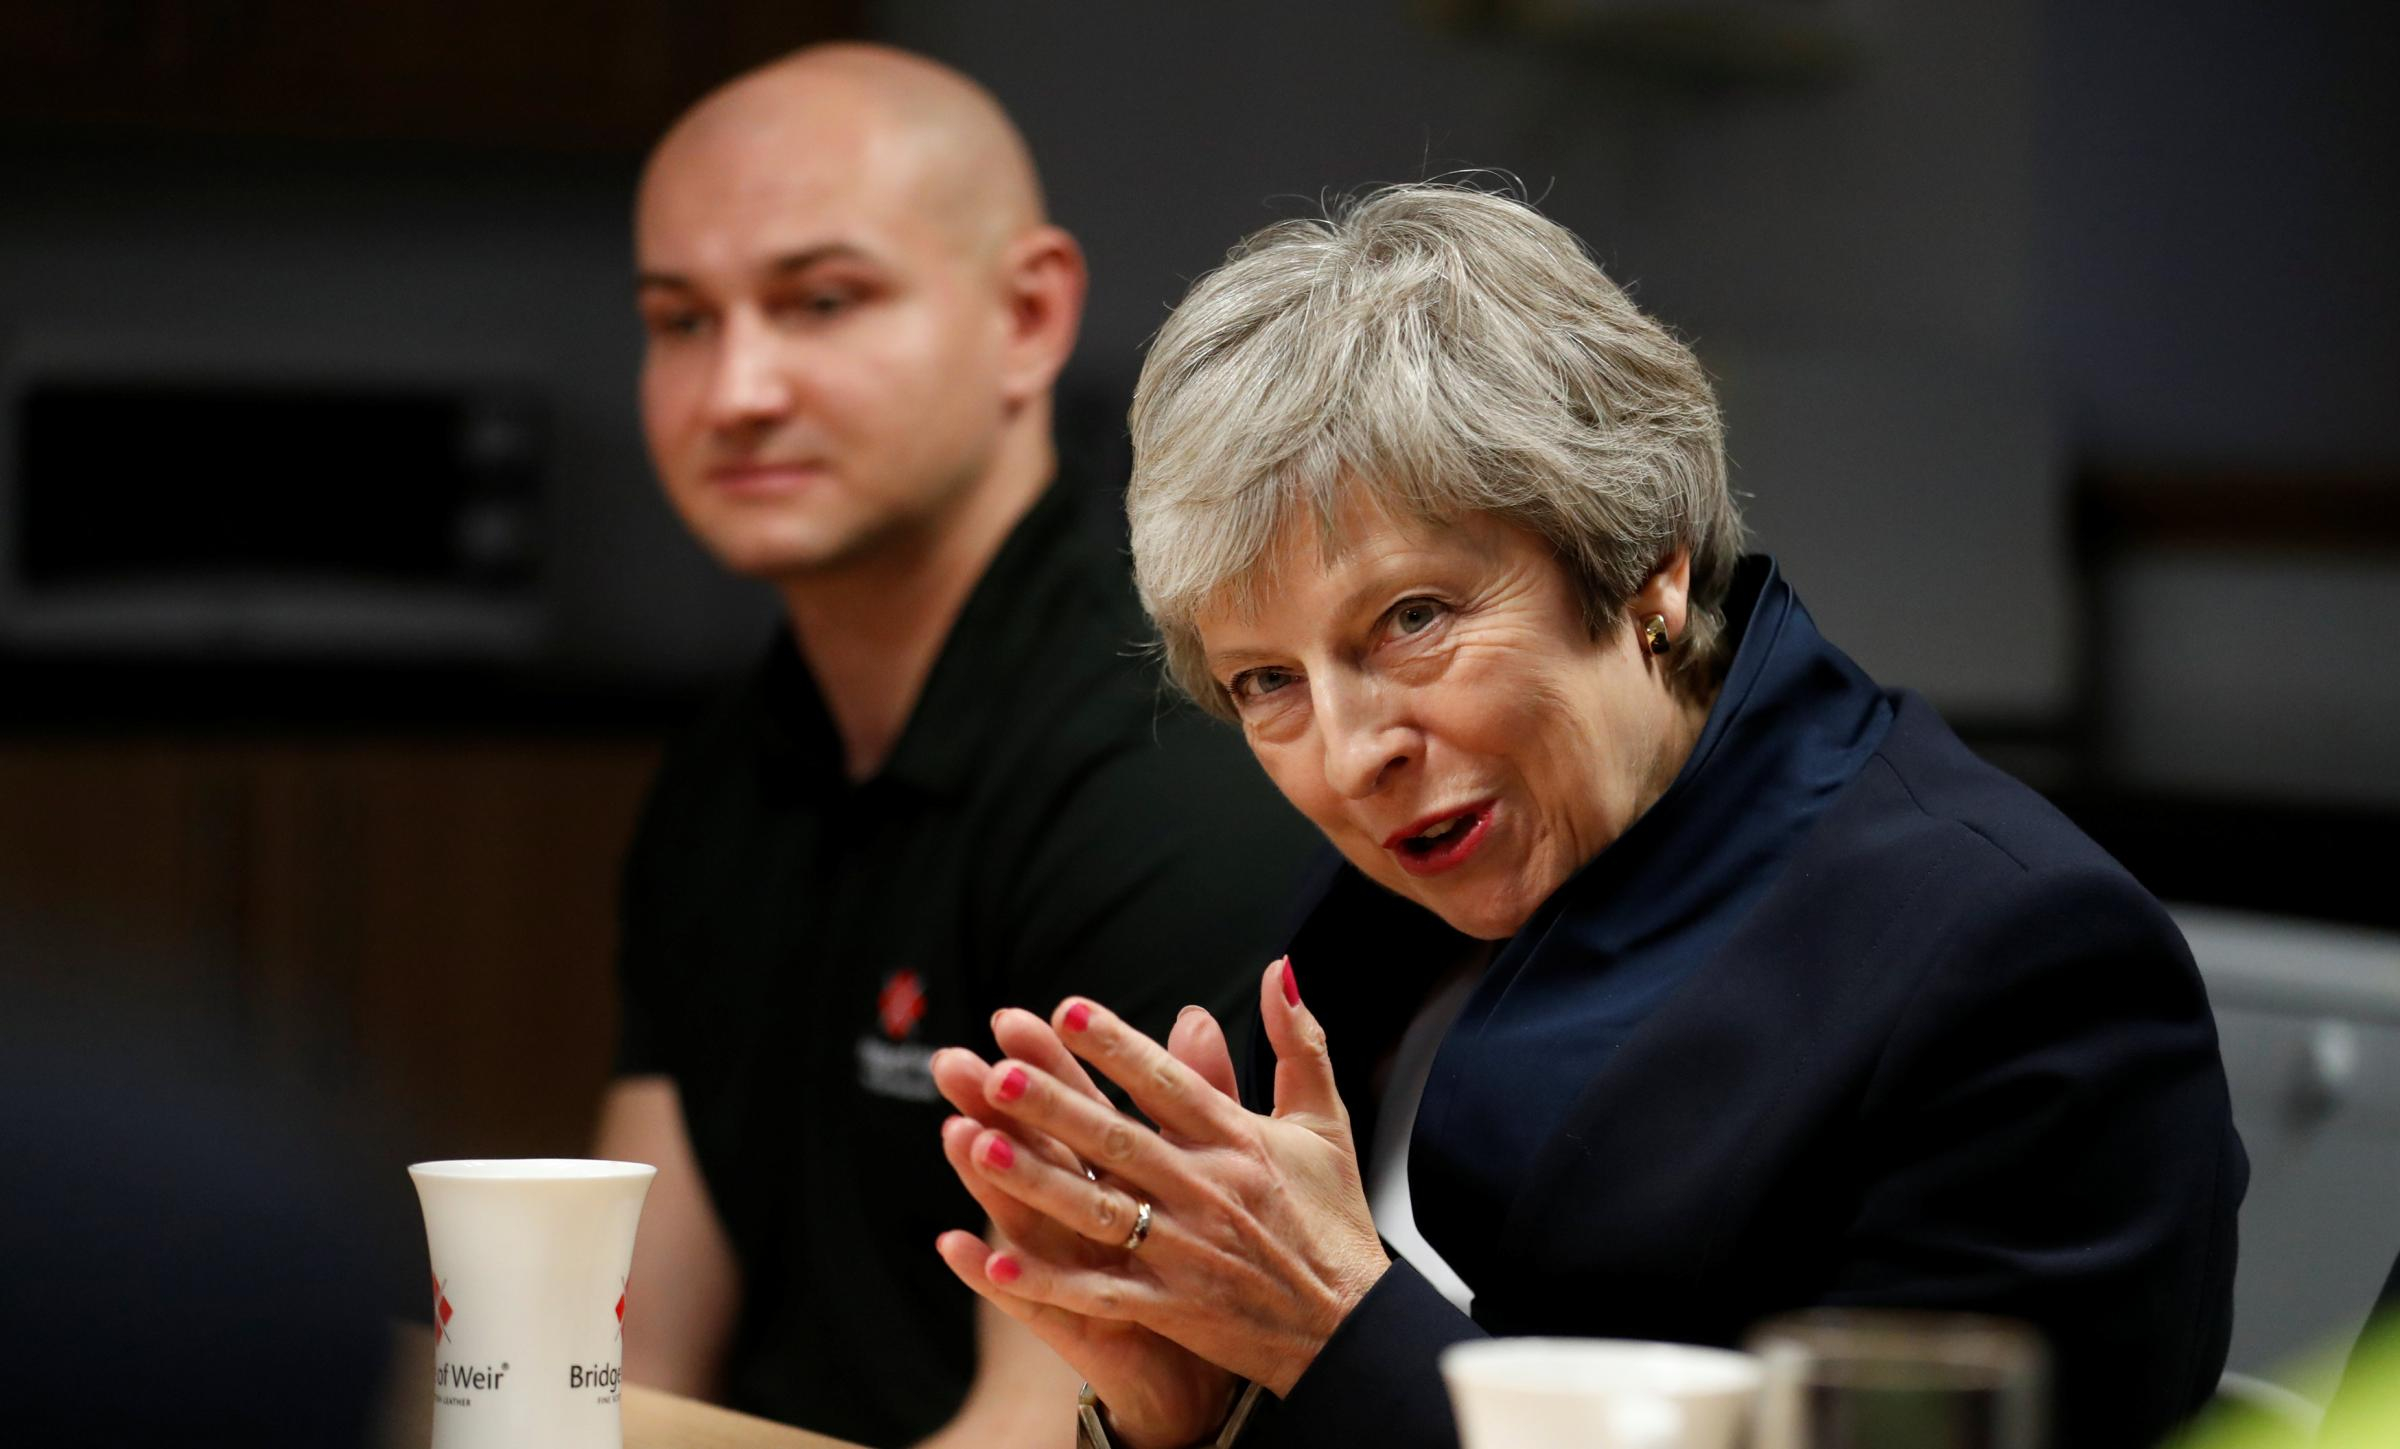 Theresa May starred in Brexit Consultation: The Movie this week, in a leather factory